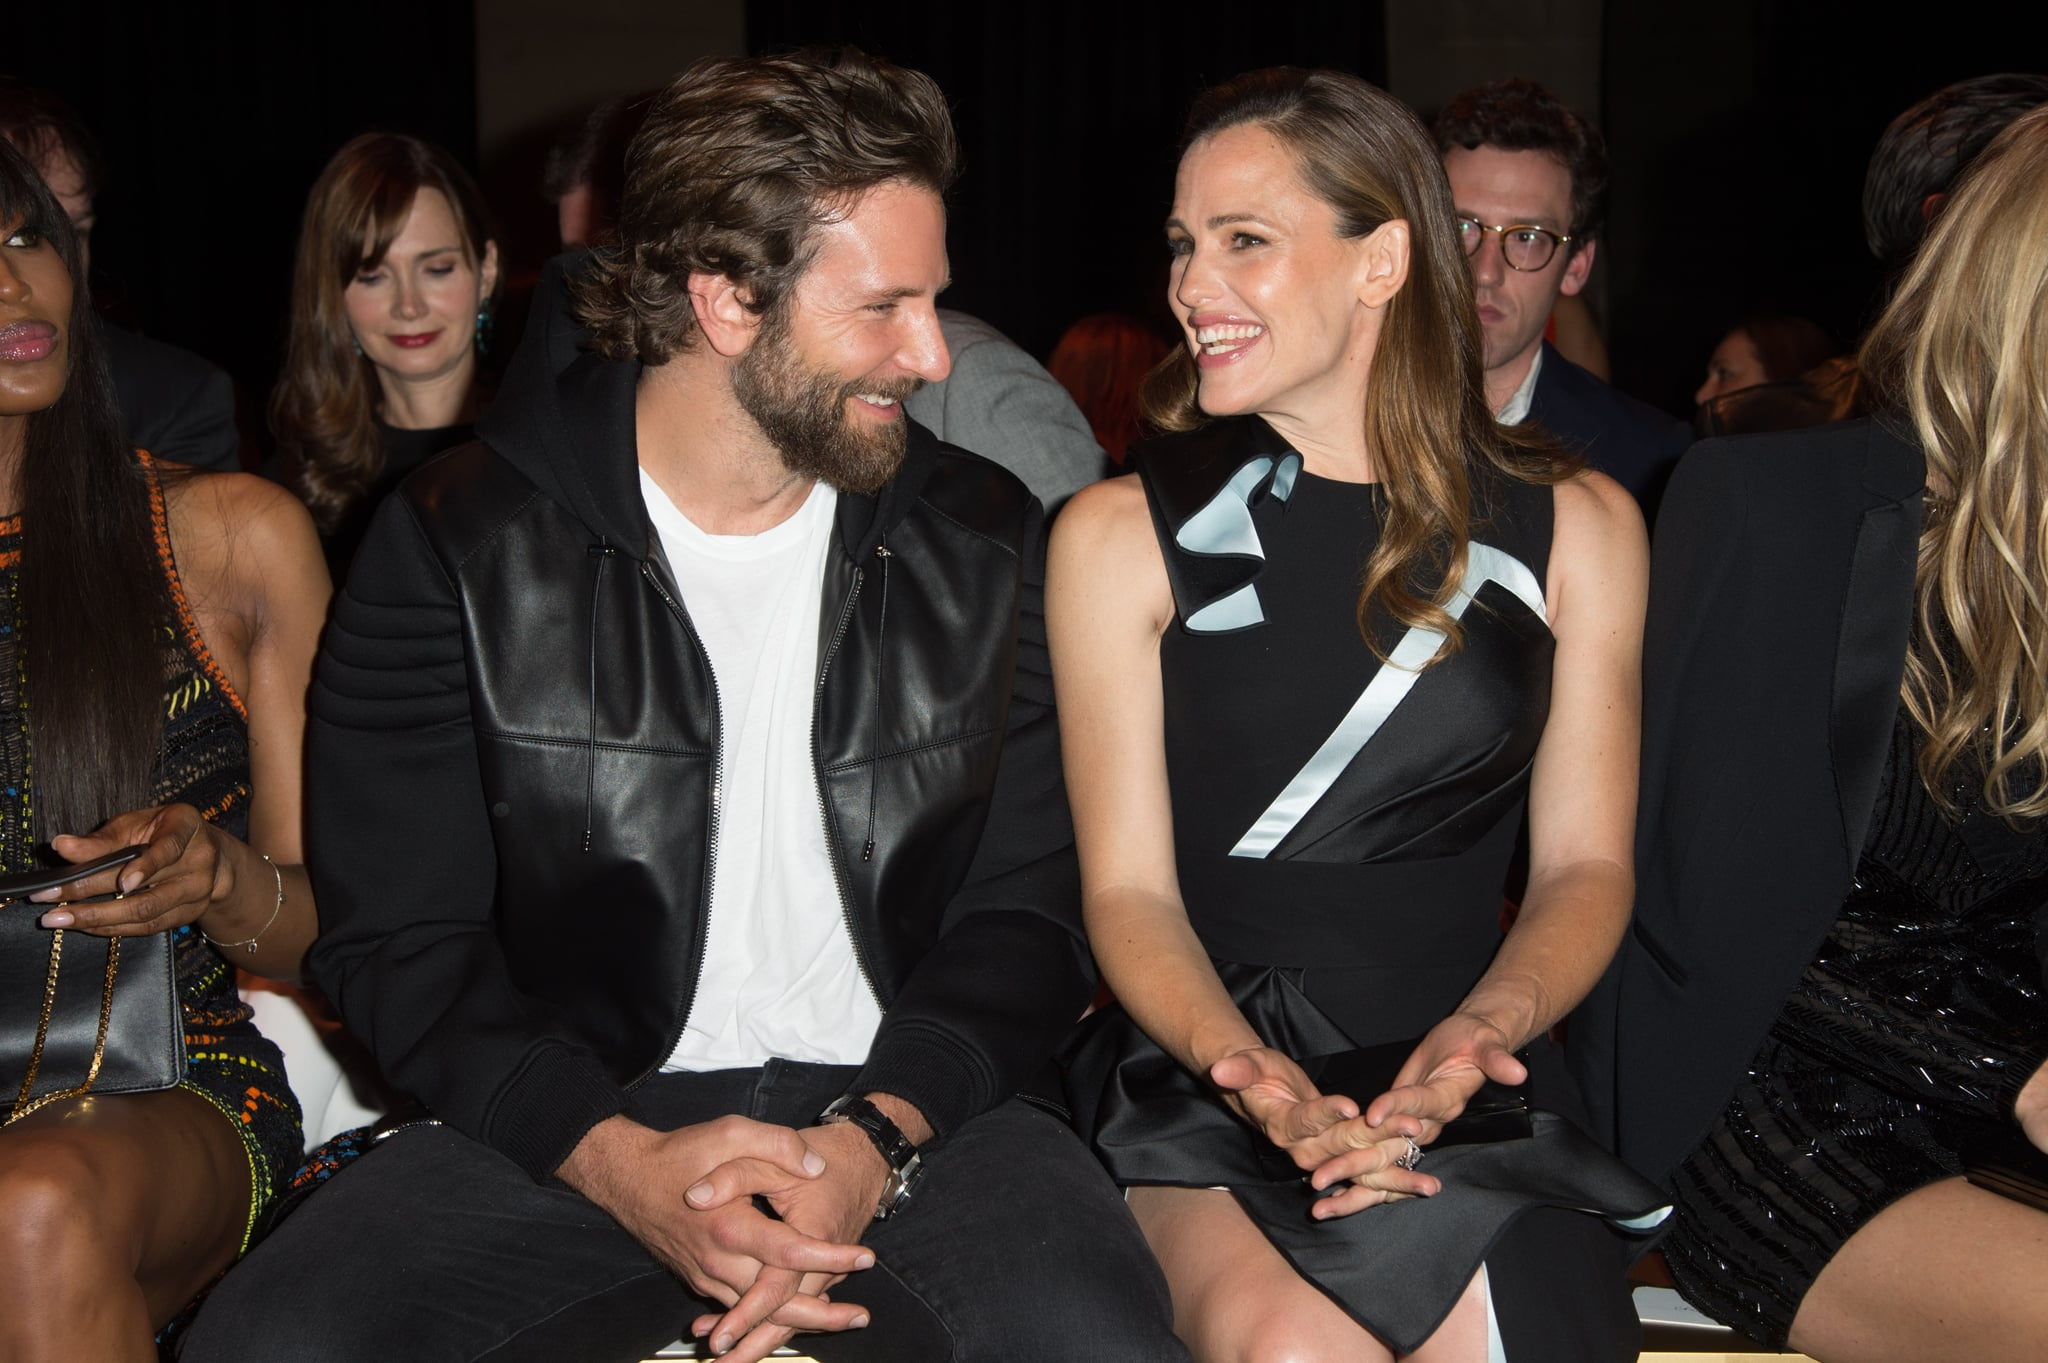 PARIS, FRANCE - JULY 03:  (L-R) Actors Bradley Cooper and Jennifer Garner attend the Versace Haute Couture Fall/Winter 2016-2017 show as part of Paris Fashion Week  on July 3, 2016 in Paris, France.  (Photo by Stephane Cardinale - Corbis/Corbis via Getty Images)